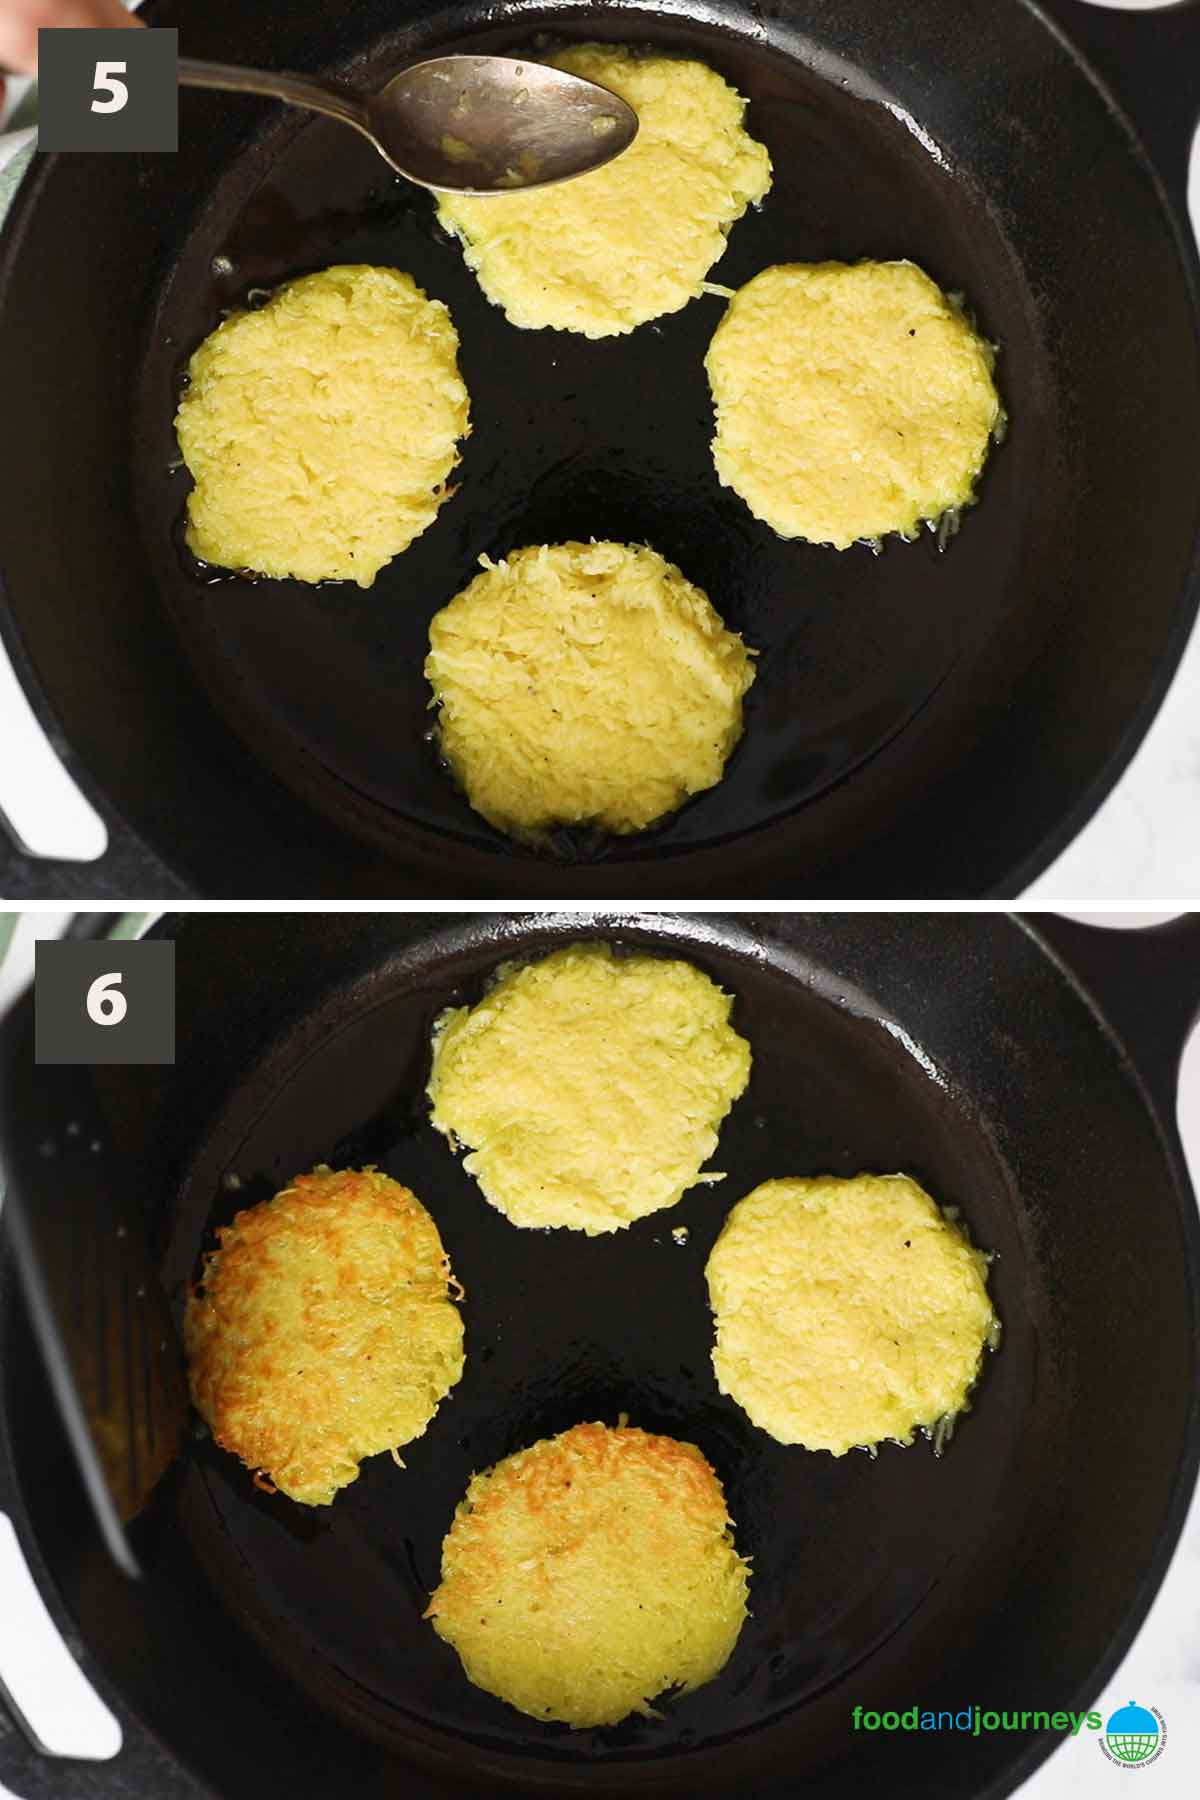 Second part of a collage of images showing how to cook kartoffelpuffer at home.